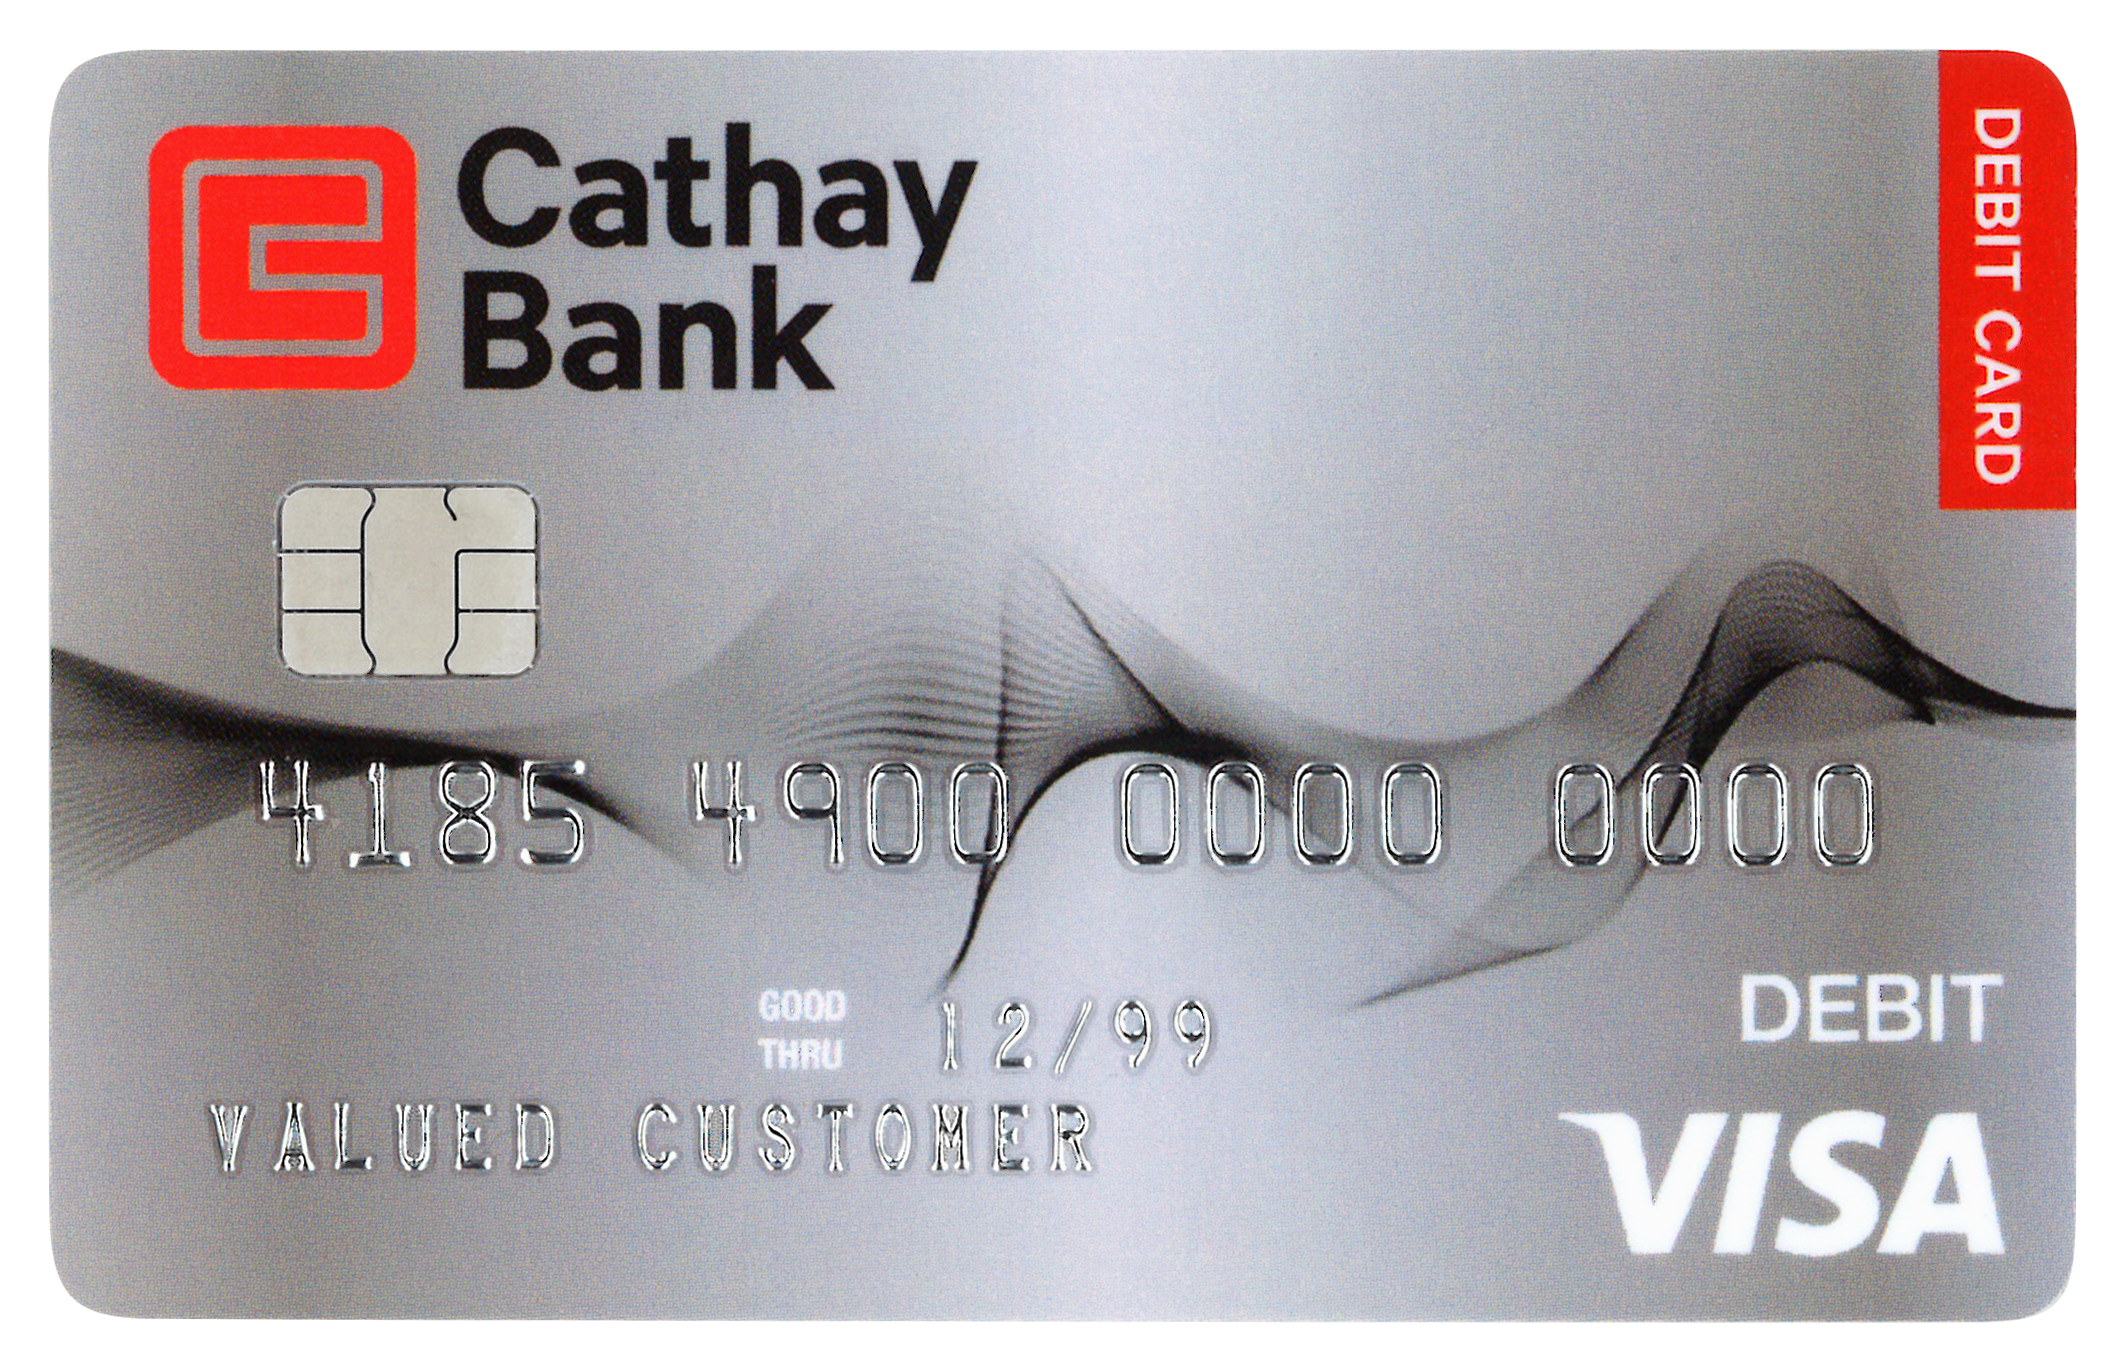 Cathay Bank debit card